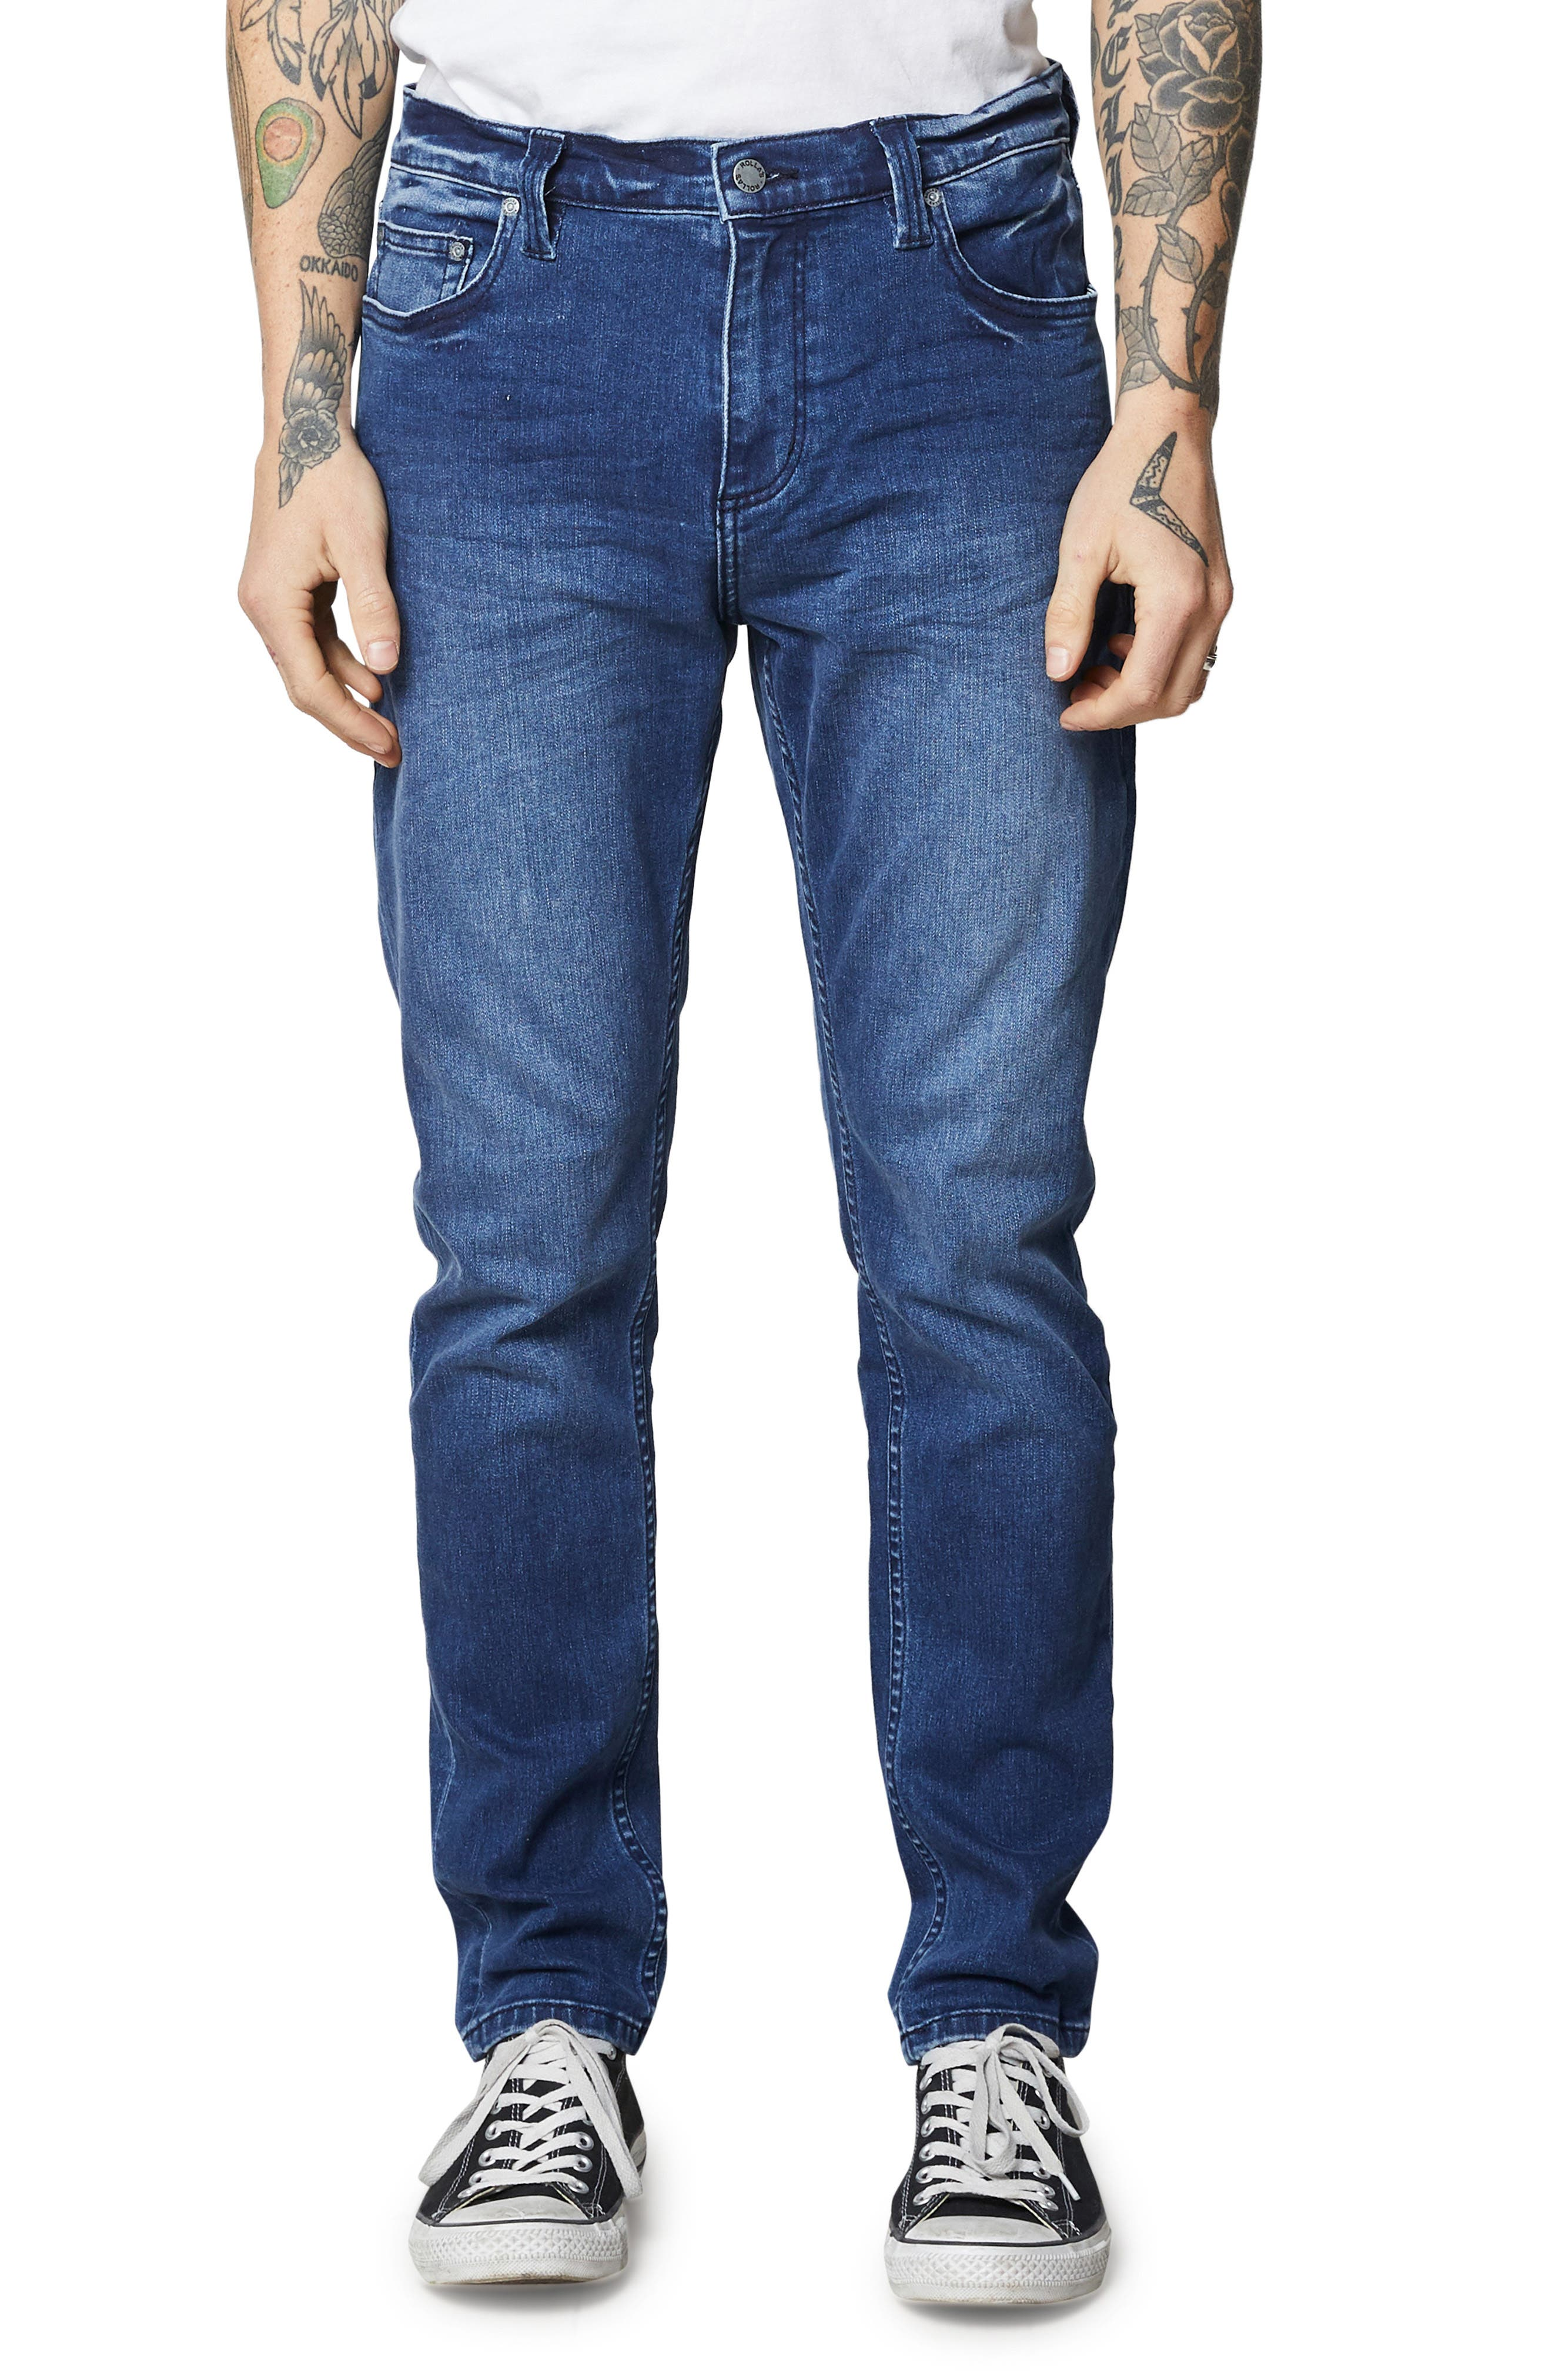 ROLLA'S Tim Slims Slim Fit Jeans in Fosters Blue